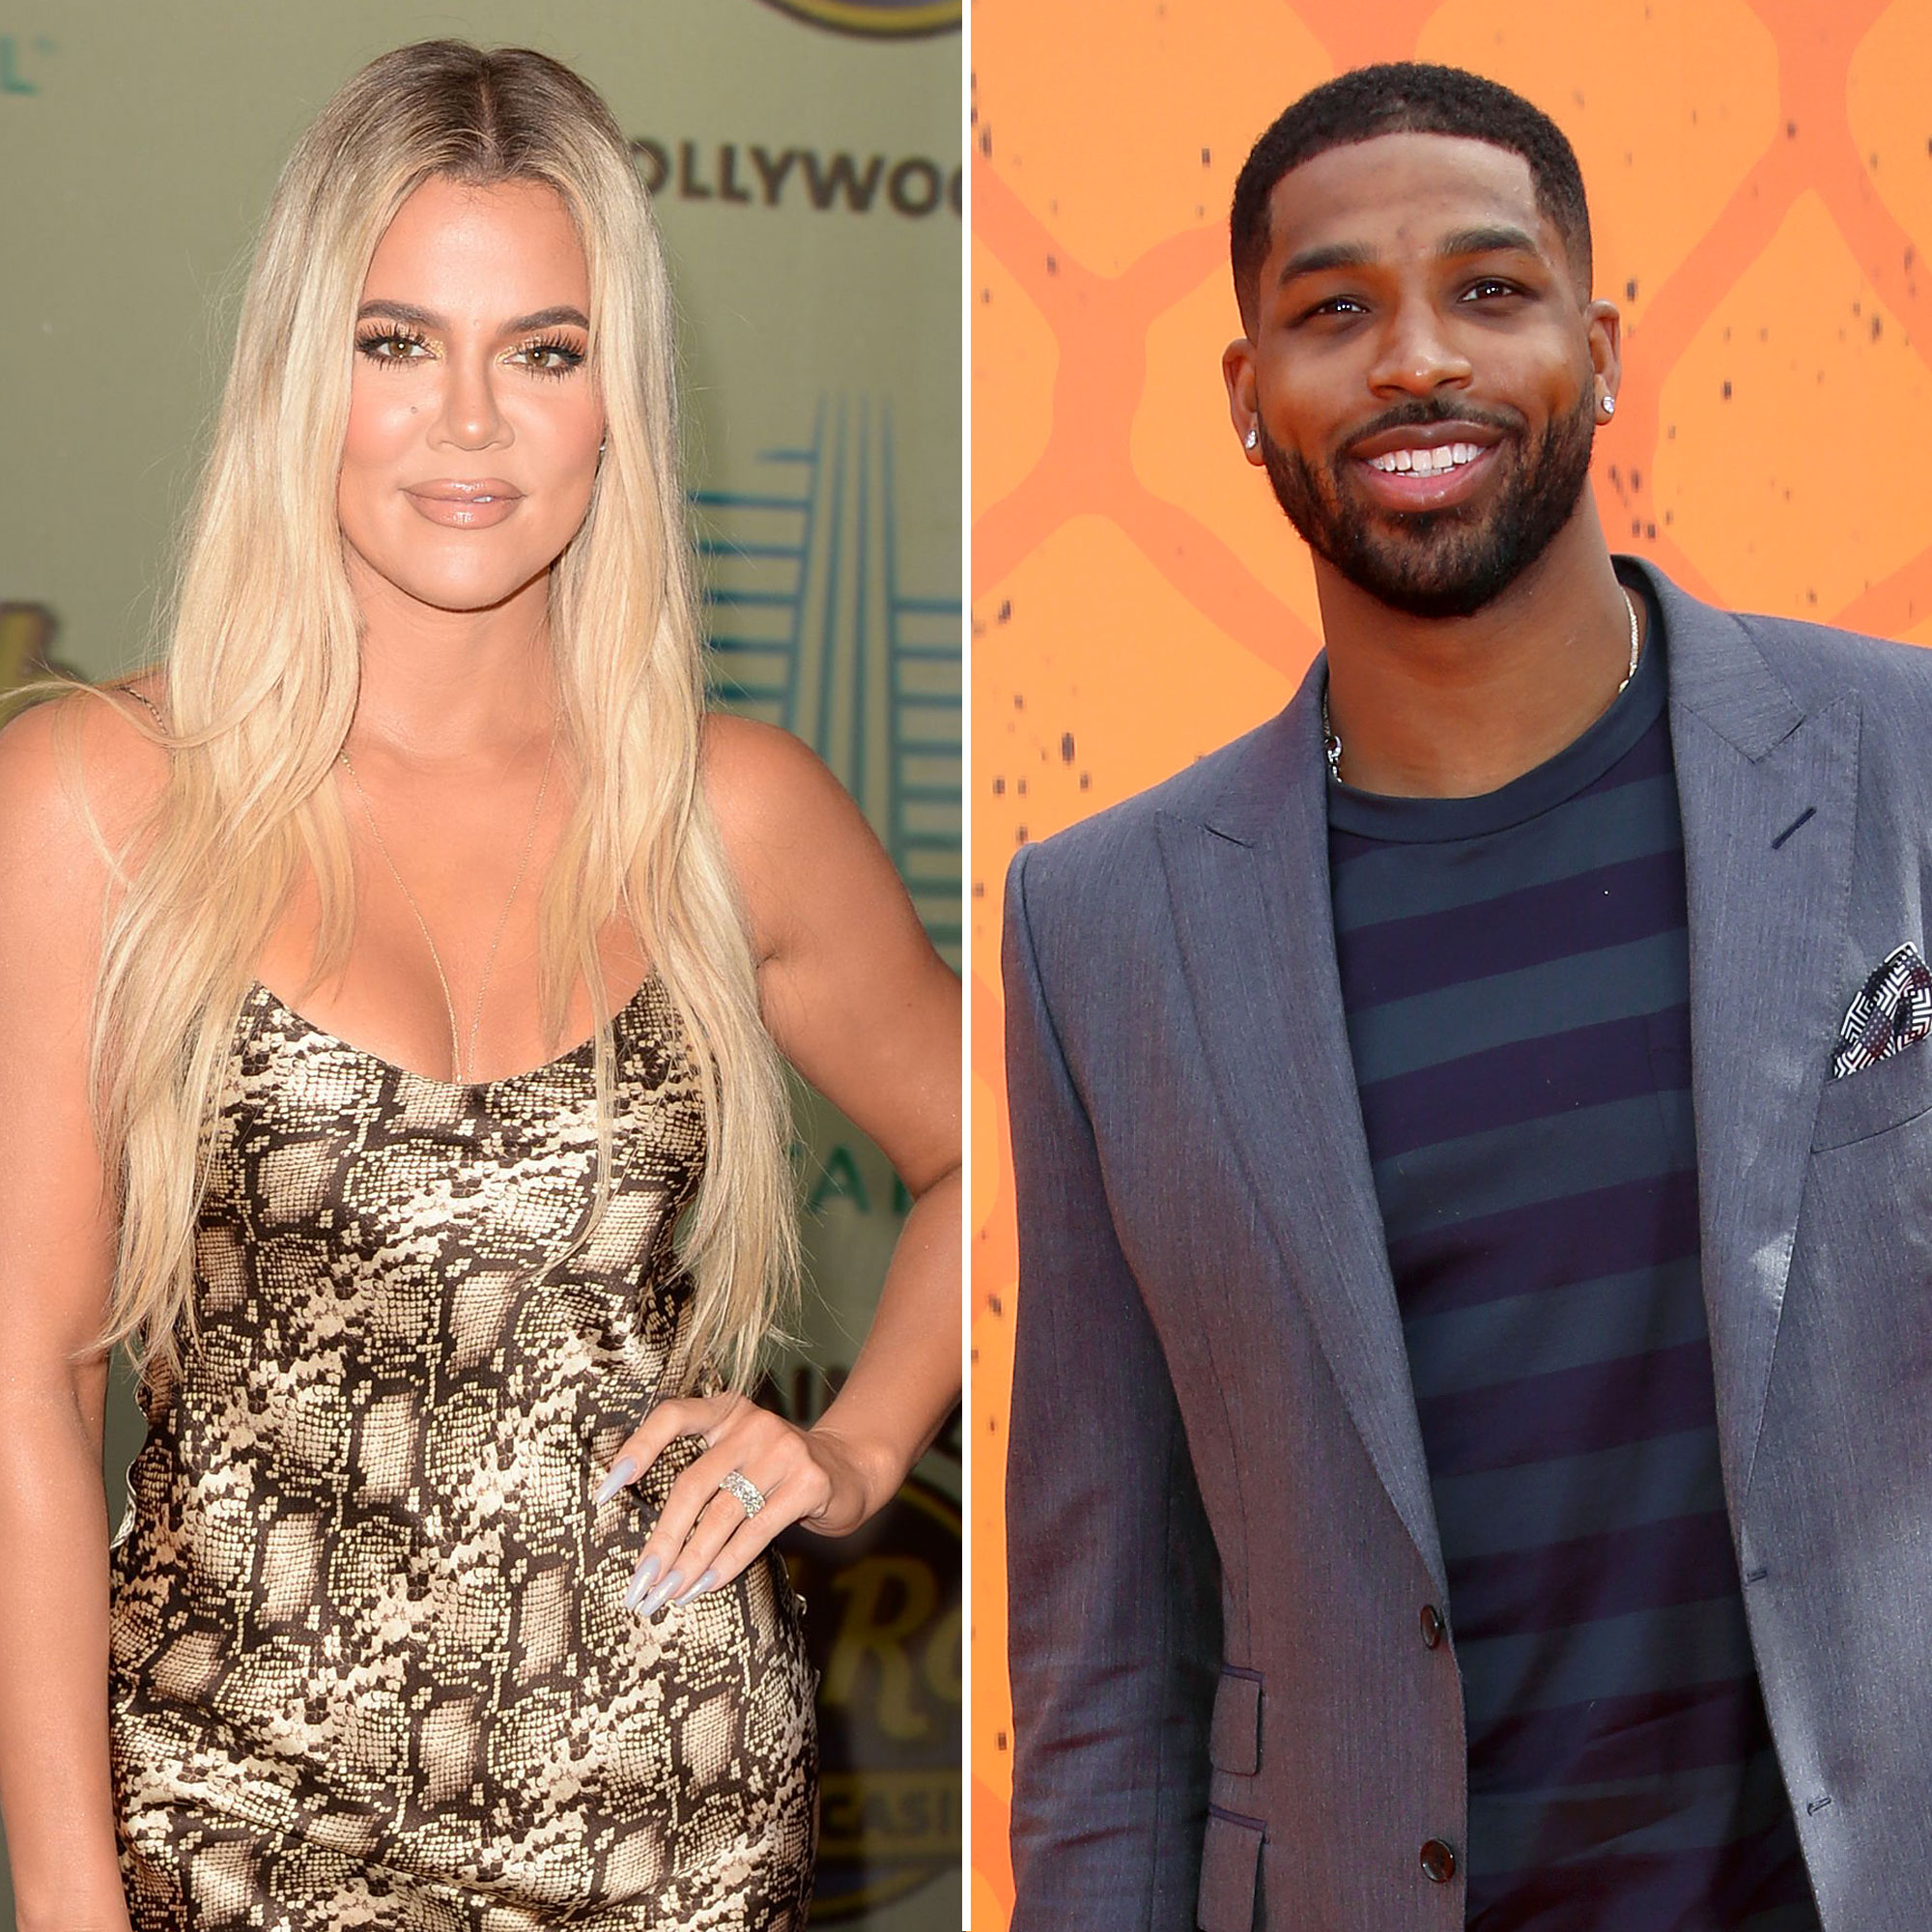 Khloe Kardashian Tristan Thompson Want To Buy A New Home Together